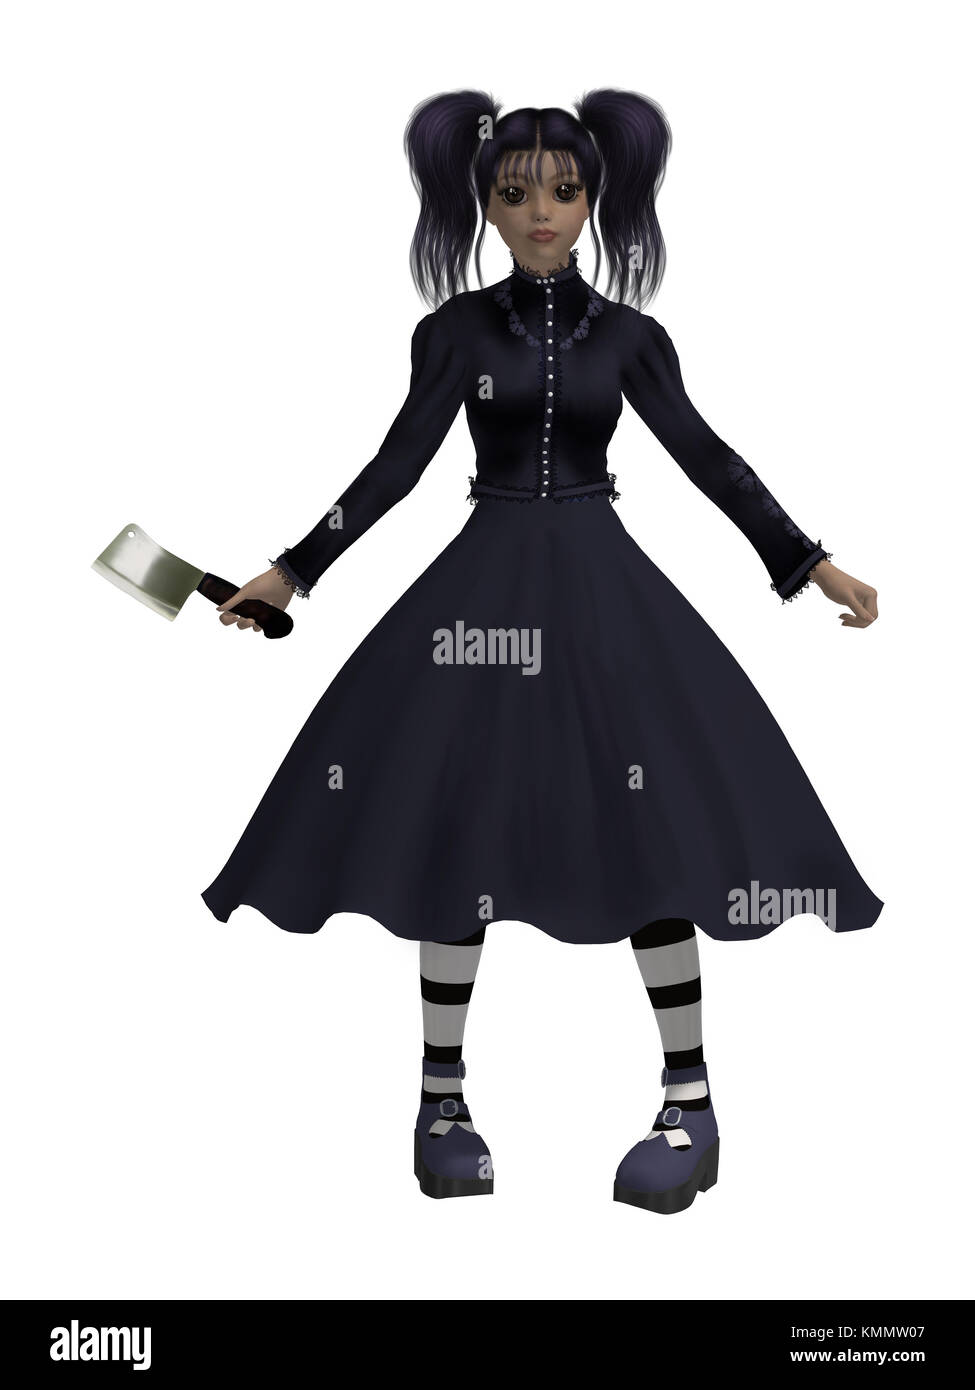 Goth girl with an axe wearing a black dress - Stock Image